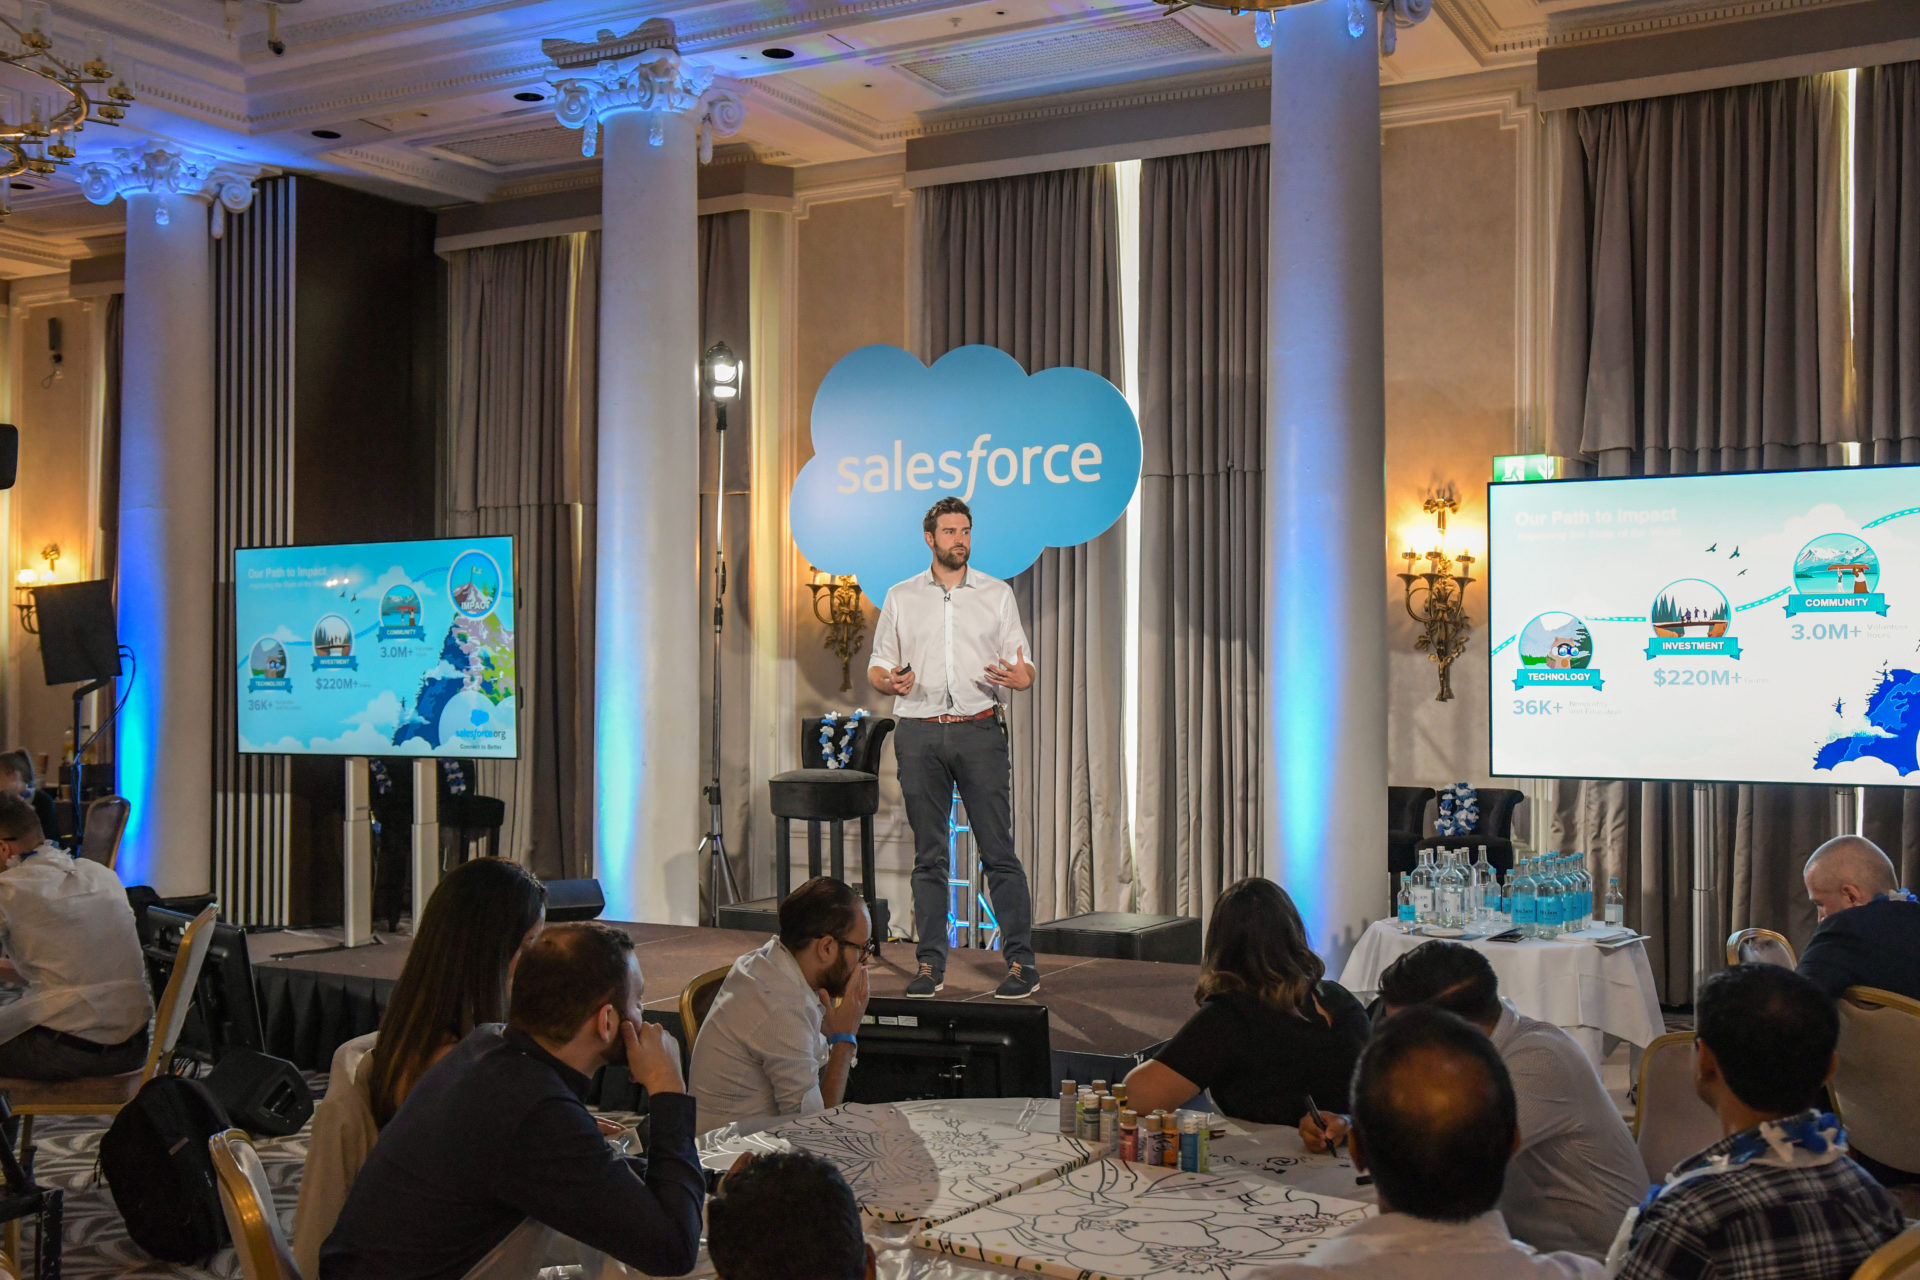 OHM-Salesforce-London-Top Selects-8685.jpg